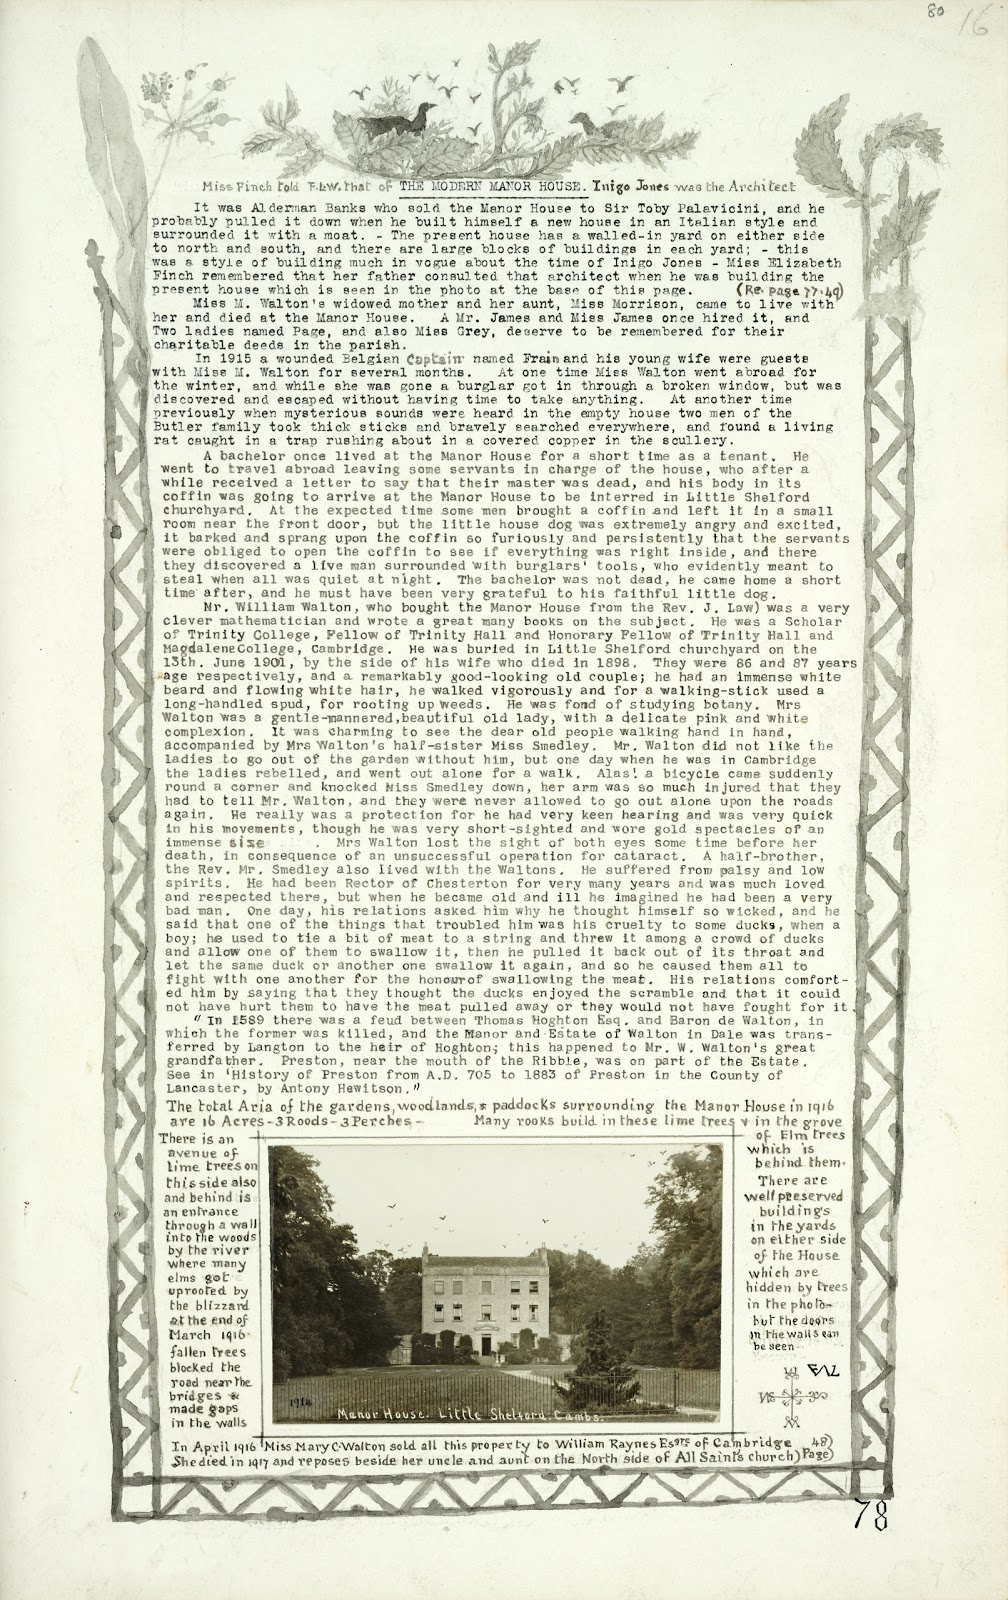 A Record of Shelford Parva by Fanny Wale P78 fo. 80, page 78: The modern Manor House, long description of house and inhabitants with postcard view at the bottom, 1914. [not in photographic copy]